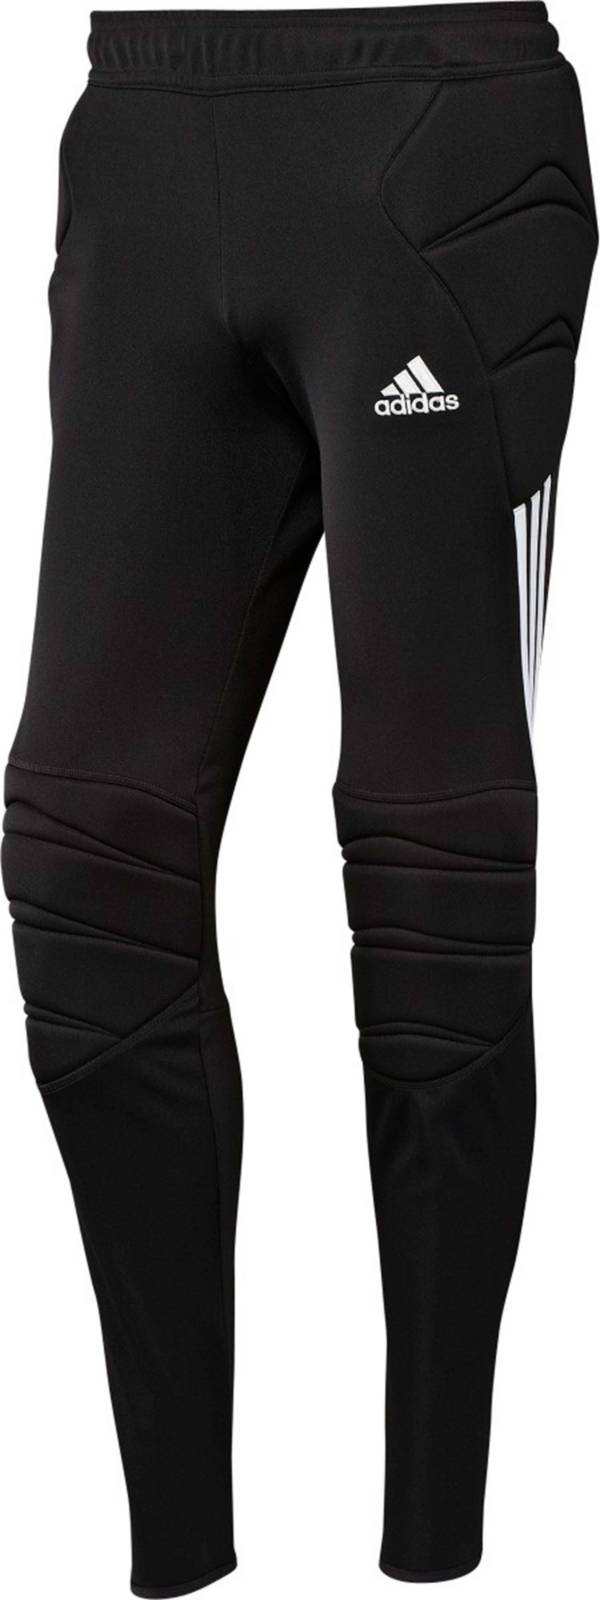 adidas Men's Tierro Goalkeeper Soccer Pants product image